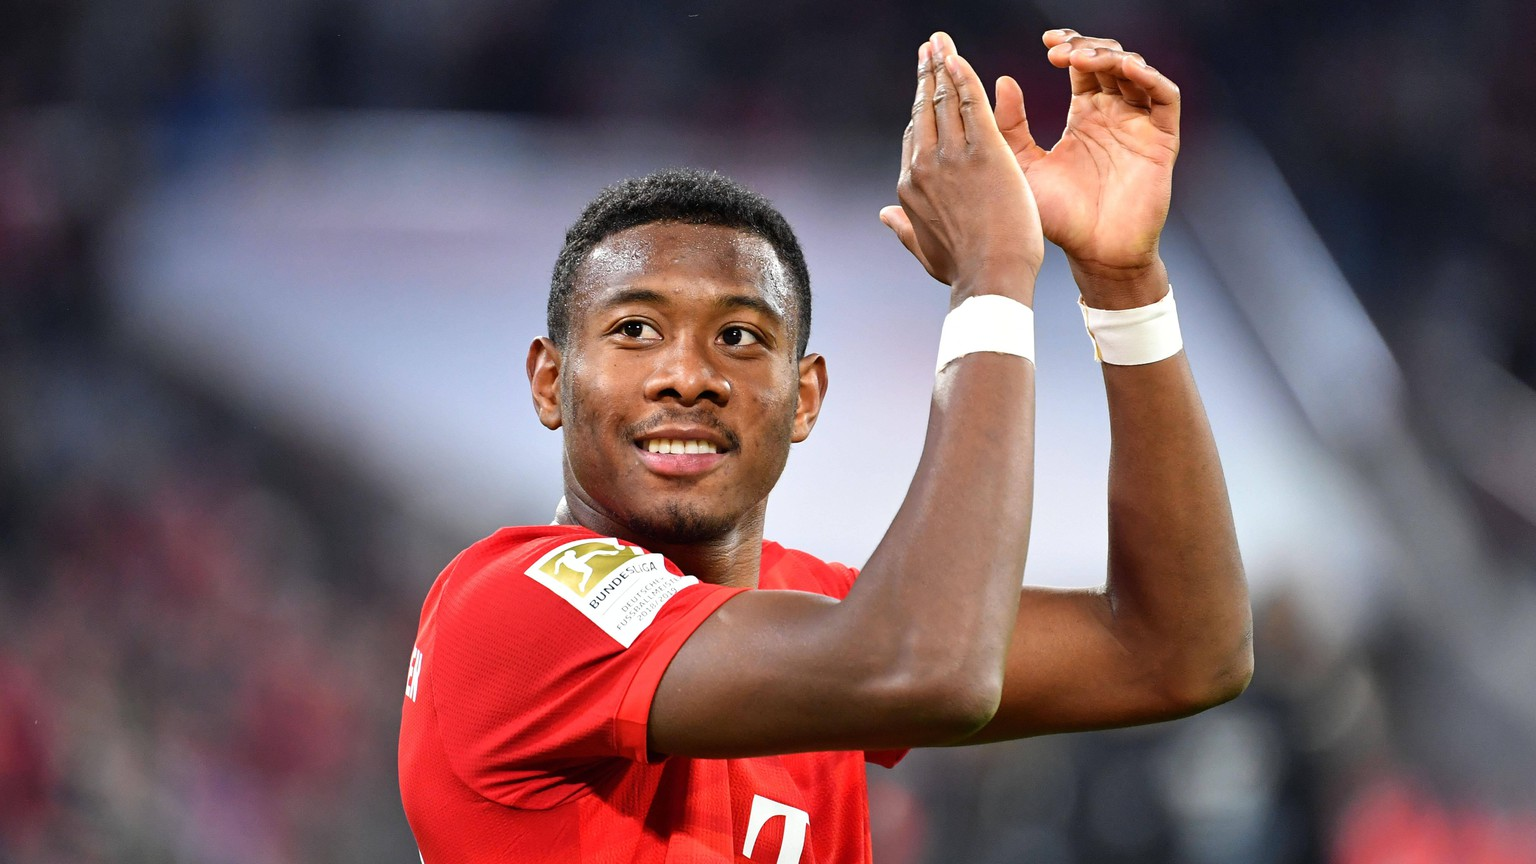 David ALABA Bayern Muenchen koennte den FC Bayern verlassen. Archivfoto: David ALABA Bayern Muenchen, Gestik, klatscht Applaus, Einzelbild,angeschnittenes Einzelmotiv,Portraet,Portrait,Portr t. Fussball 1. Bundesliga,23.Spieltag,Spieltag23, FC Bayern Muenchen M - SC Paderborn PB 3-2, am 21.02.2020 in Muenchen A L L I A N Z A R E N A, DFL REGULATIONS PROHIBIT ANY USE OF PHOTOGRAPHS AS IMAGE SEQUENCES AND/OR QUASI-VIDEO.  *** David ALABA Bayern Muenchen could leave the FC Bayern Archivfoto David ALABA Bayern Muenchen , gesture, applause, applause, single picture, cut single motive, portrait, portrait, portrait of football 1 Bundesliga,23 Matchday,Matchday23, FC Bayern Muenchen M SC Paderborn PB 3 2, on 21 02 2020 in Munich A L L I A N Z A R E N A, DFL REGULATIONS PROHIBIT ANY USE OF PHOTOGRAPHS AS IMAGE SEQUENCES AND OR QUASI VIDEO